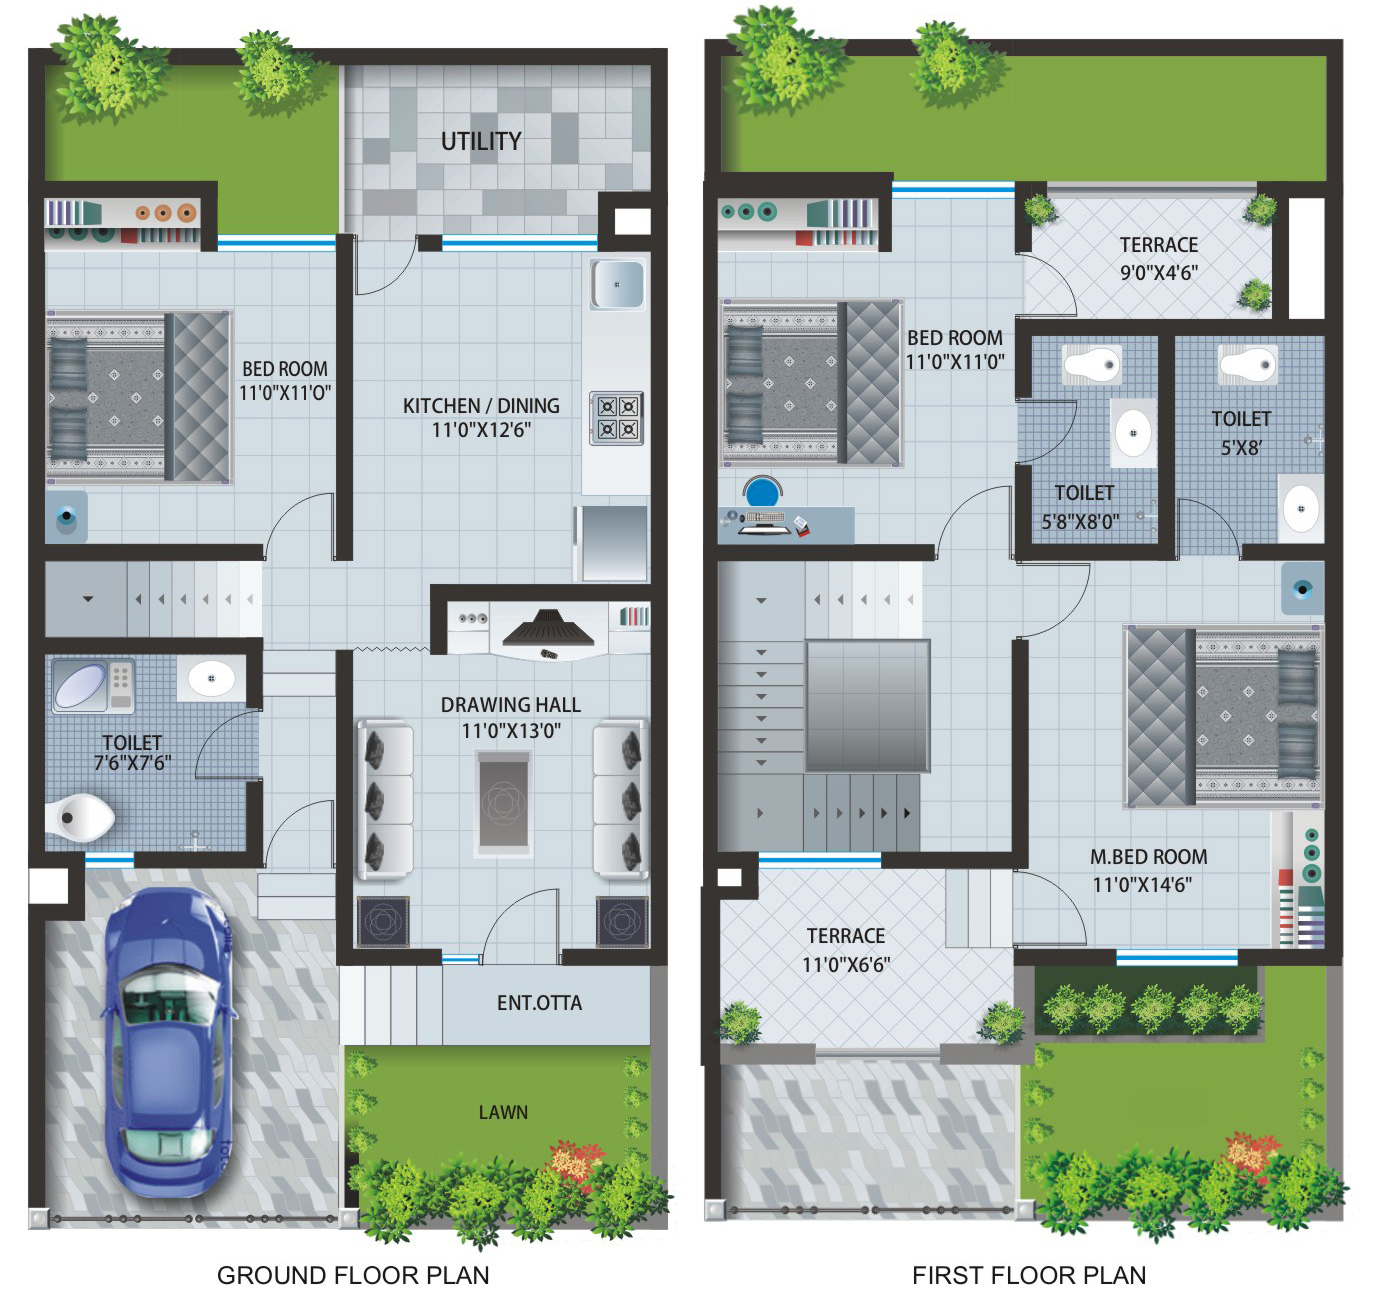 row house layout plan patel pride aurangabad - Home Design Plans With Photos